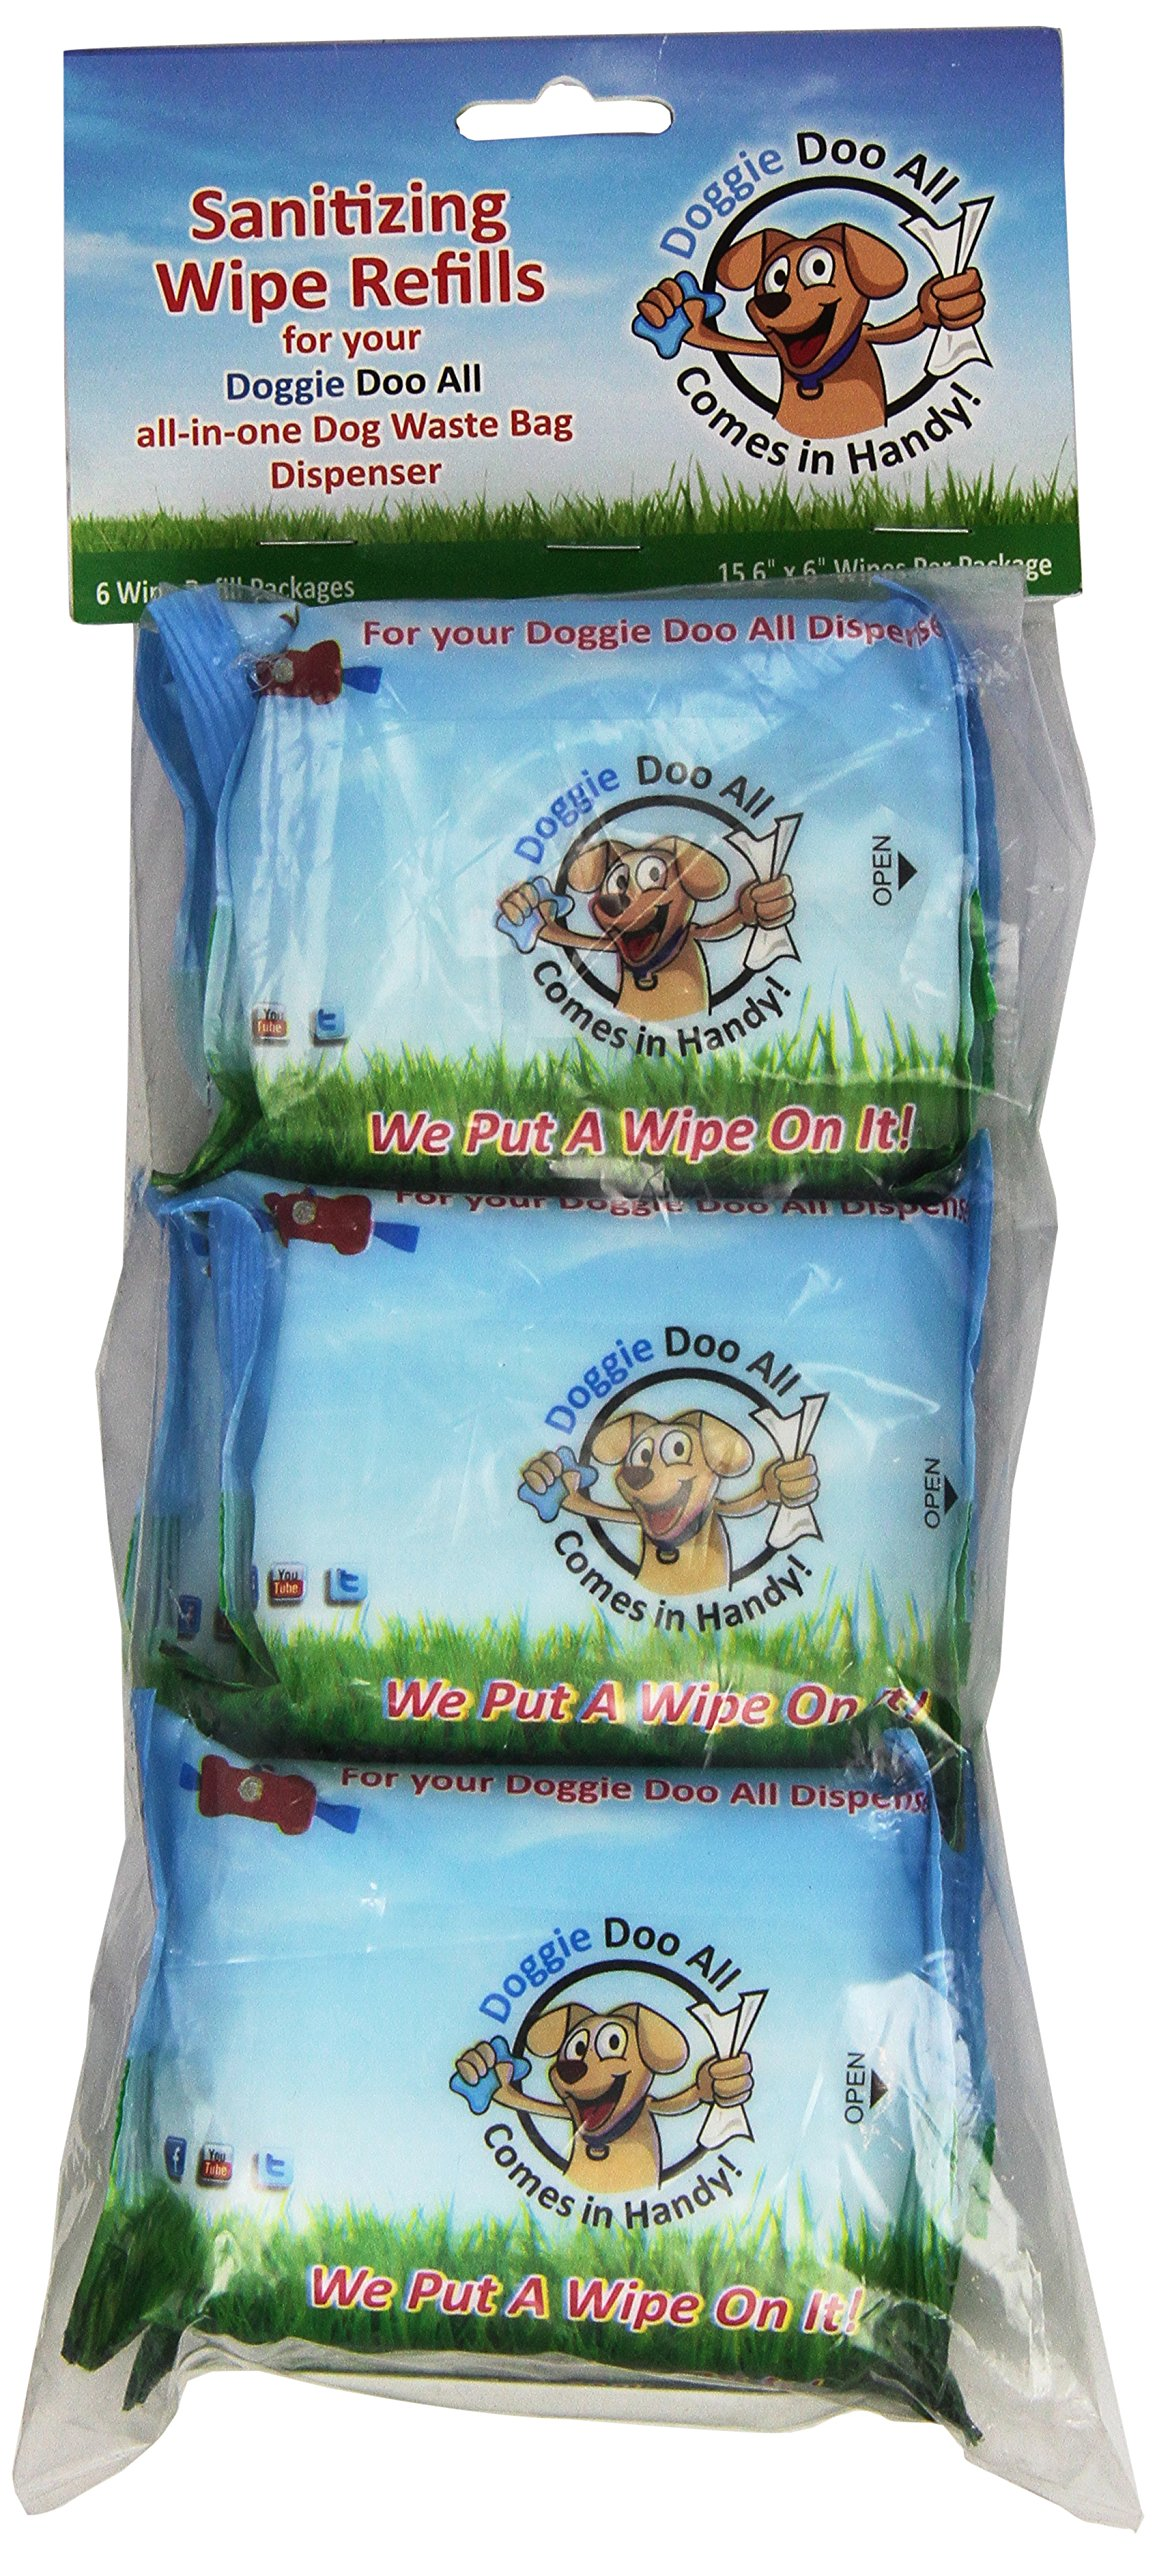 Doggie Doo All Refill Wipes, 6-Pack